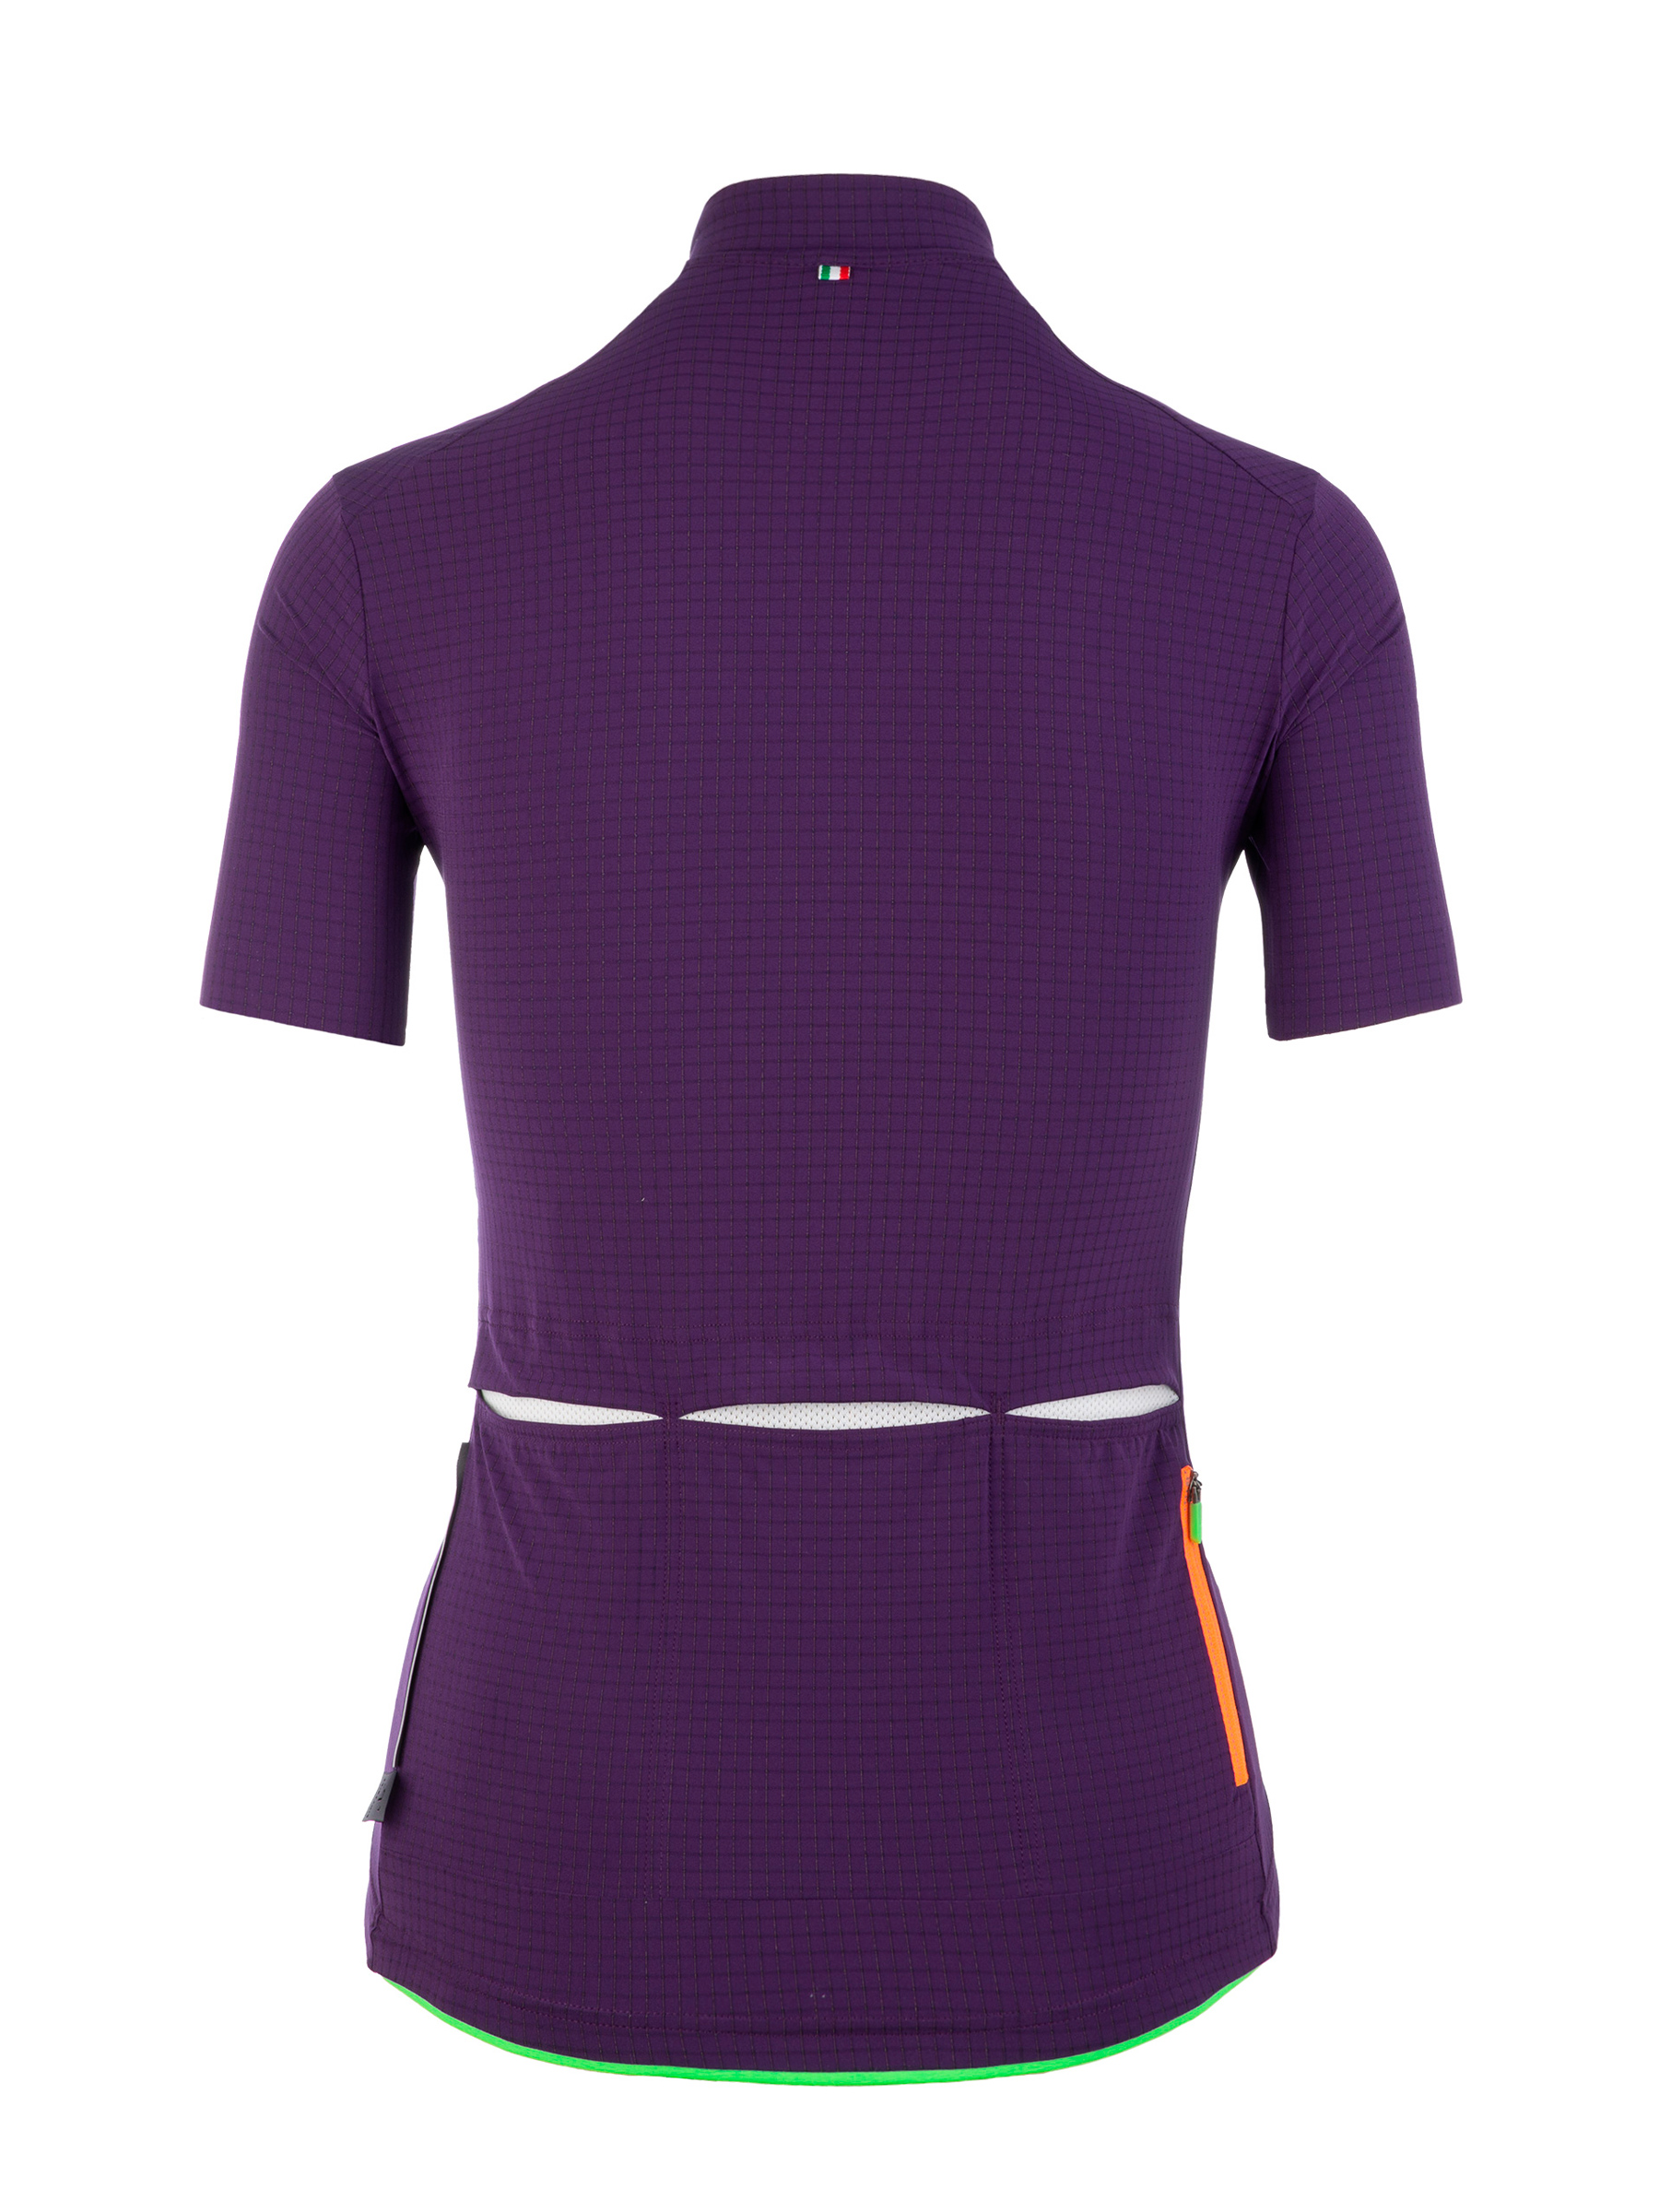 Maillot Jersey short sleeve L1 Lady Pinstripe Violet